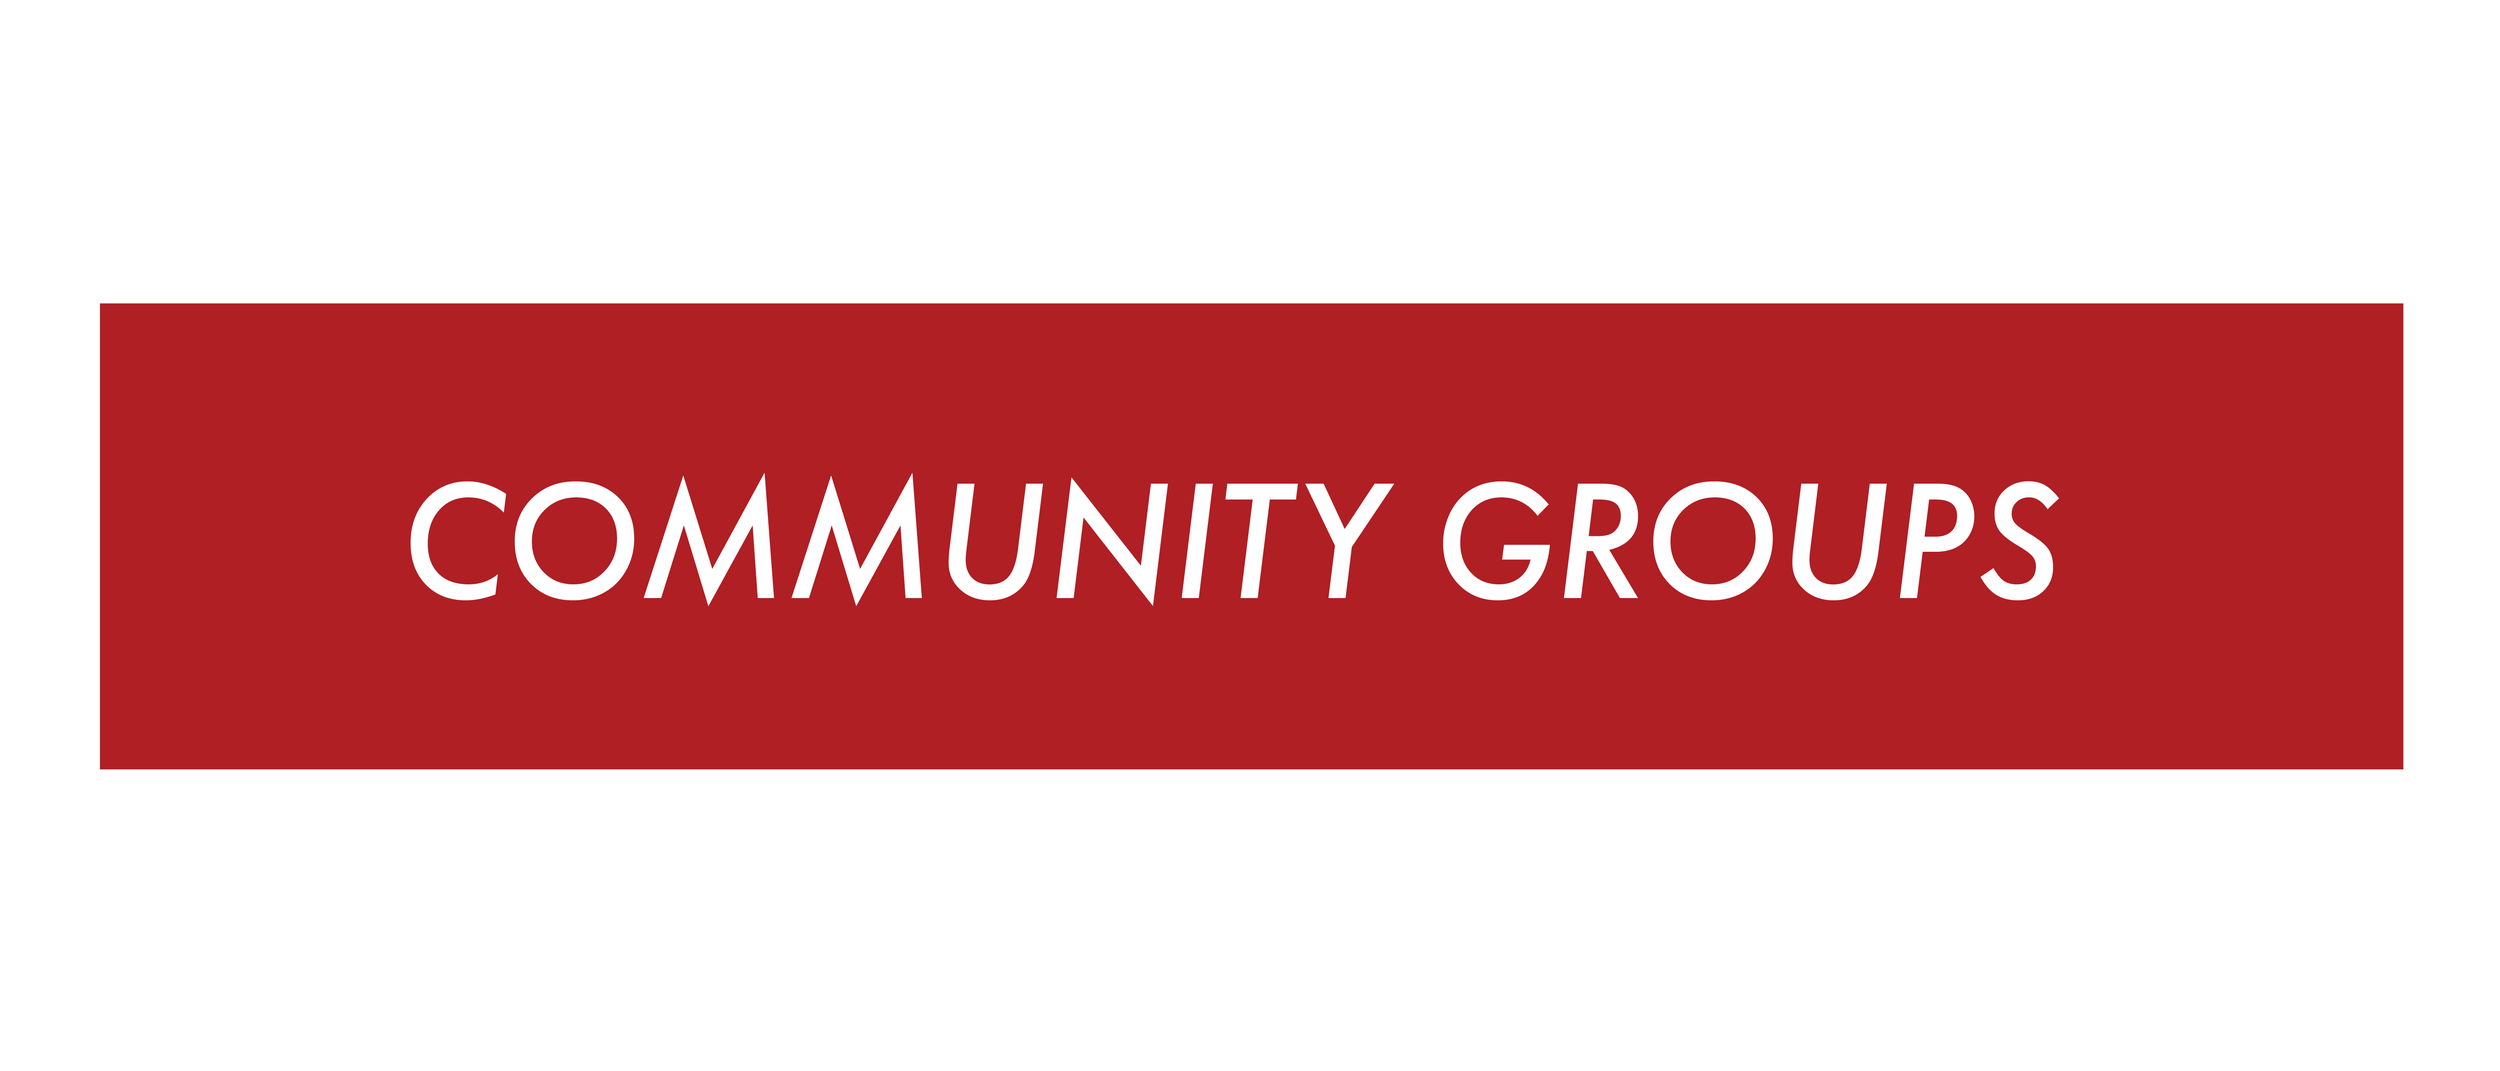 communitygroups-07.png